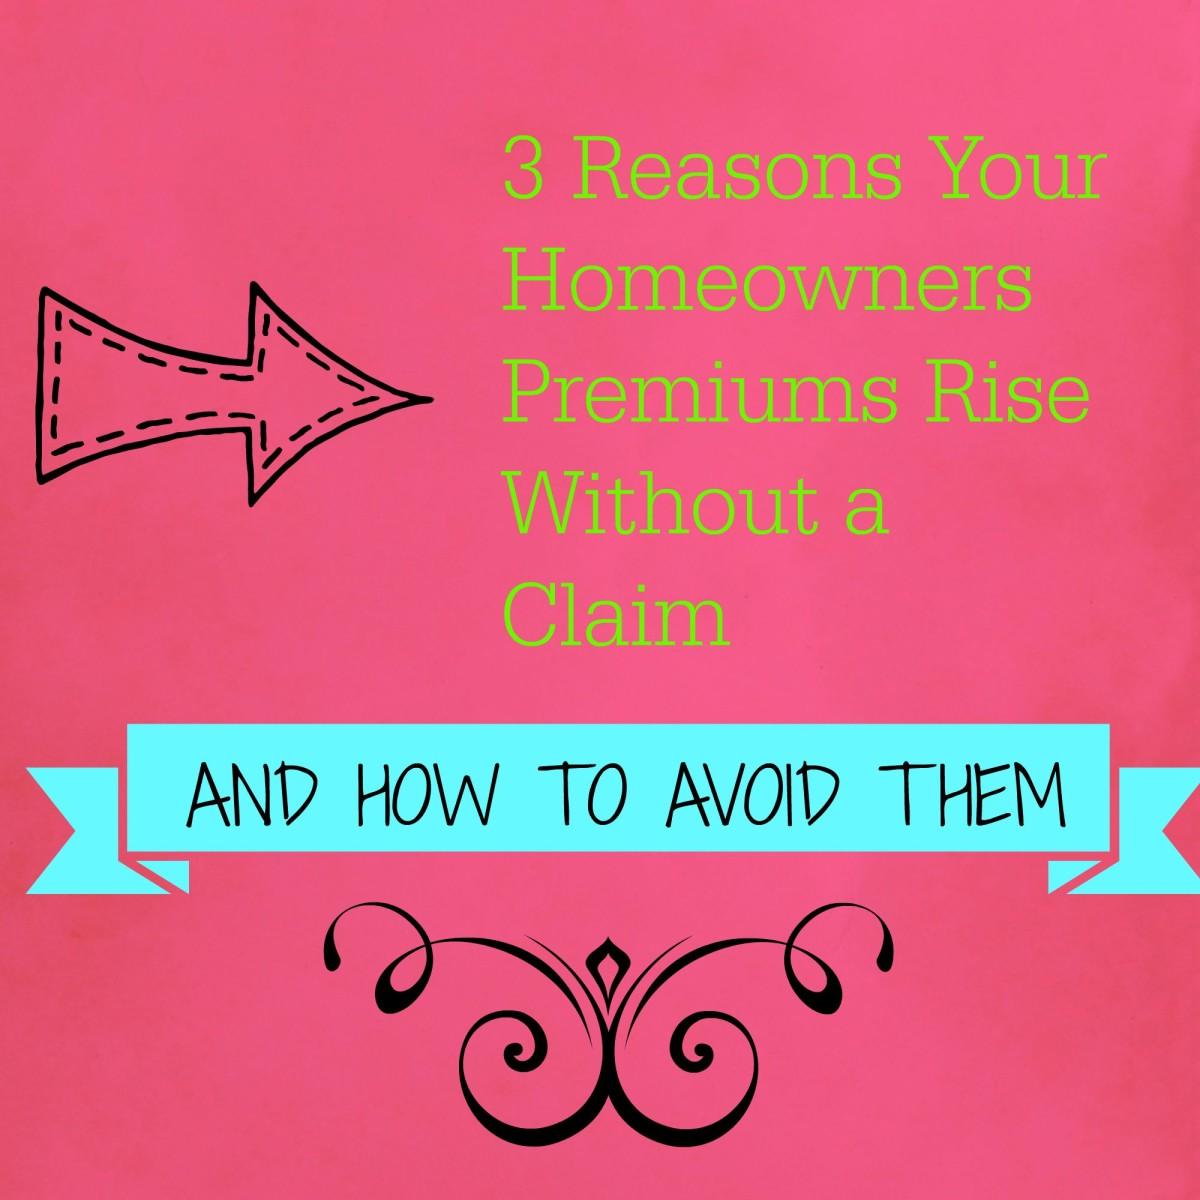 Buying homeowners insurance - 3 reasons homeowners insurance premiums rise without a claim